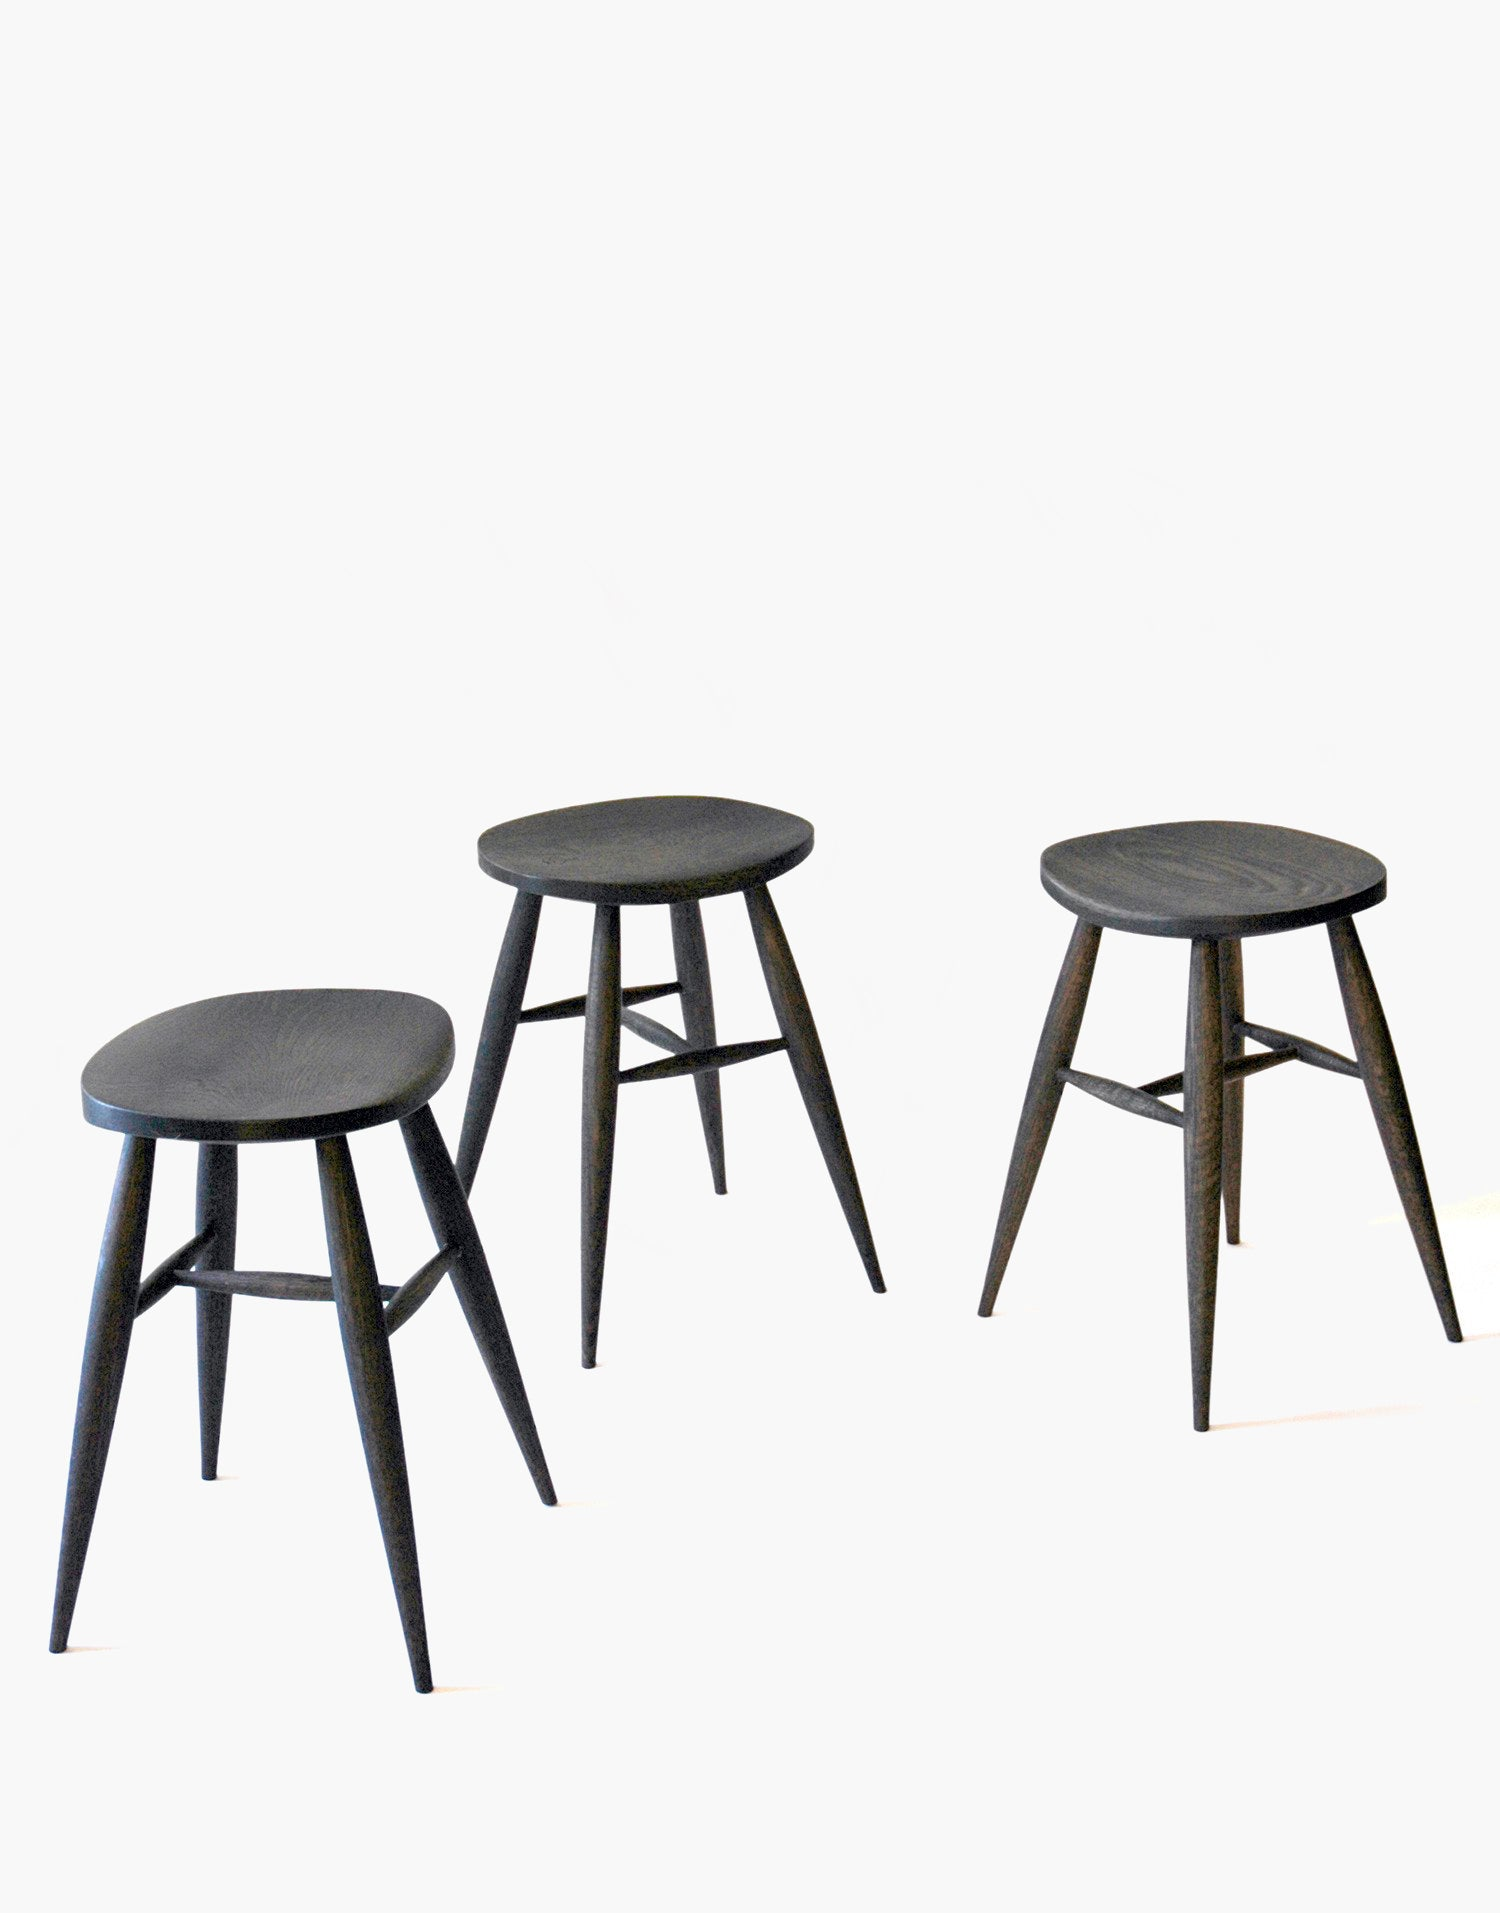 diy projects parallel degrees plans and long both point off not short wood cut white other square free ana metal each height stool at to ends adjustable